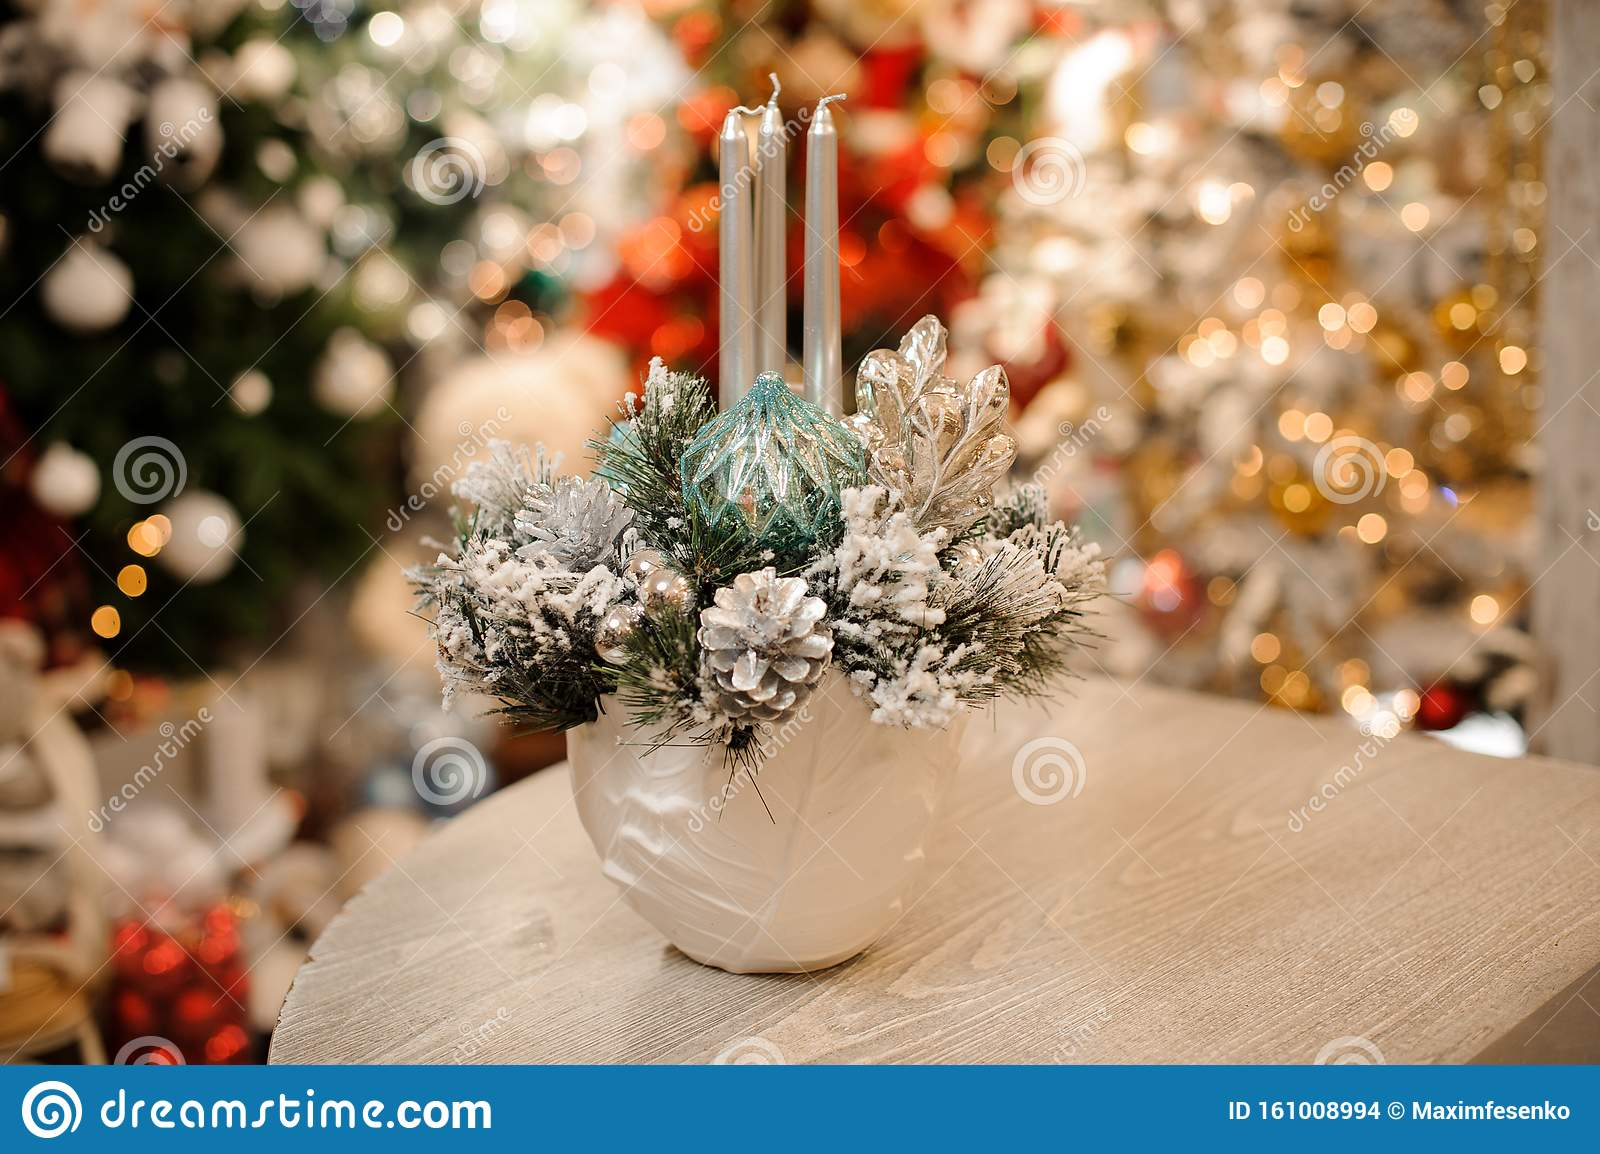 White Color Vase With Christmas Decor Composition Of Flowers And Candles Stock Photo Image Of Candle Decoration 161008994